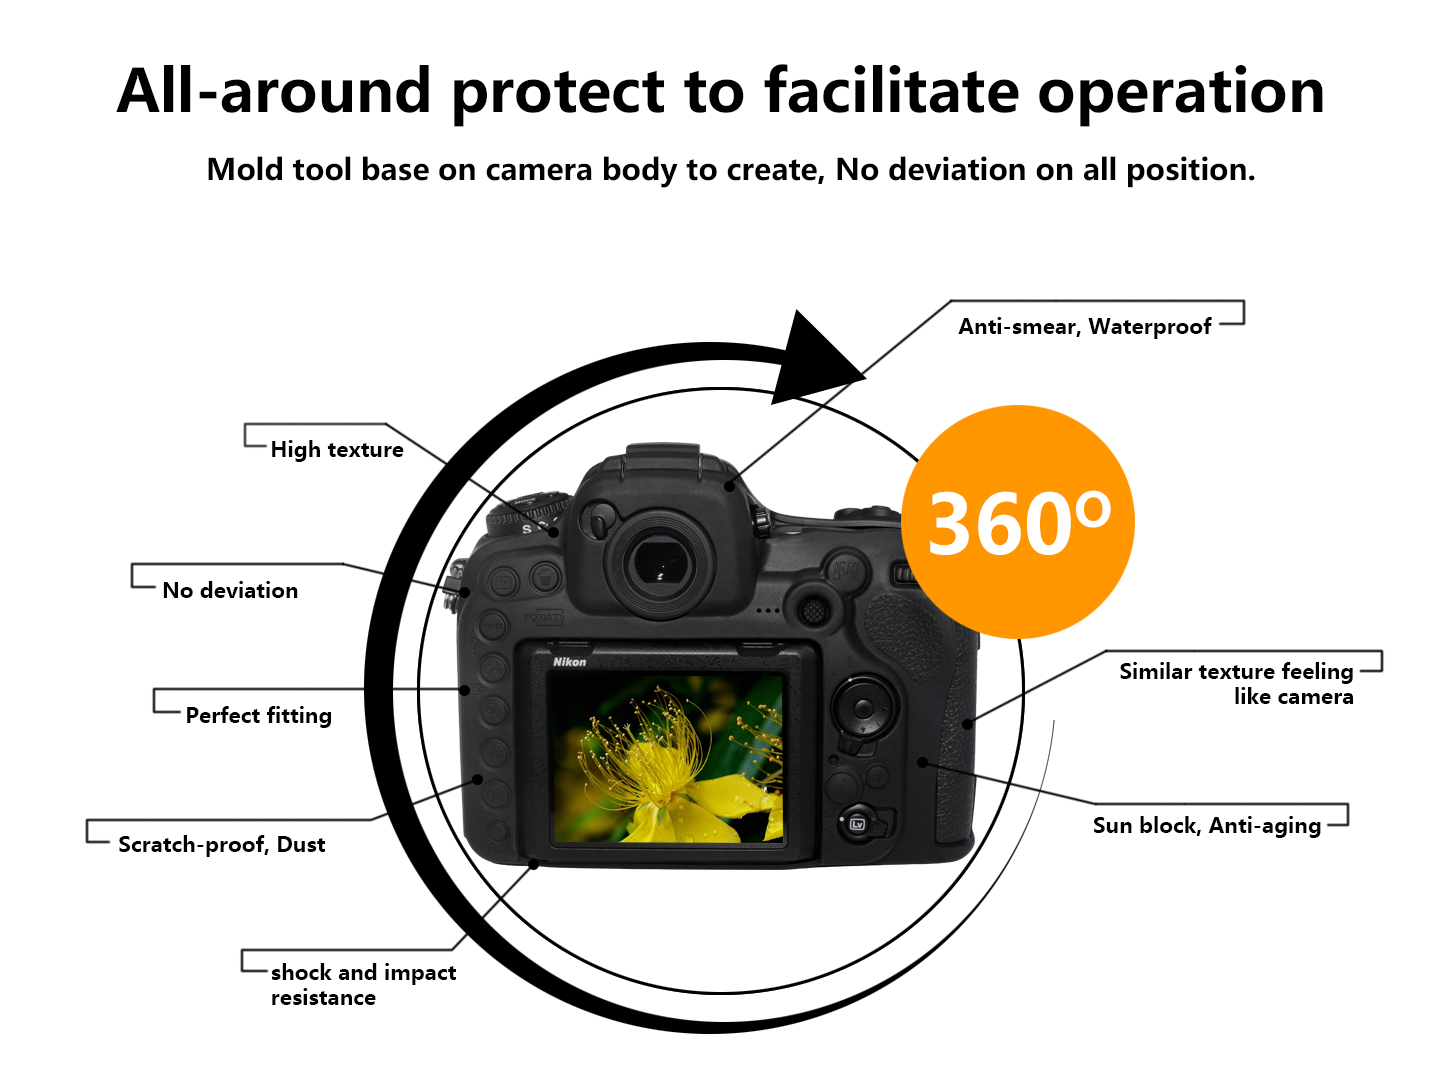 All-around protect to facilitate operation